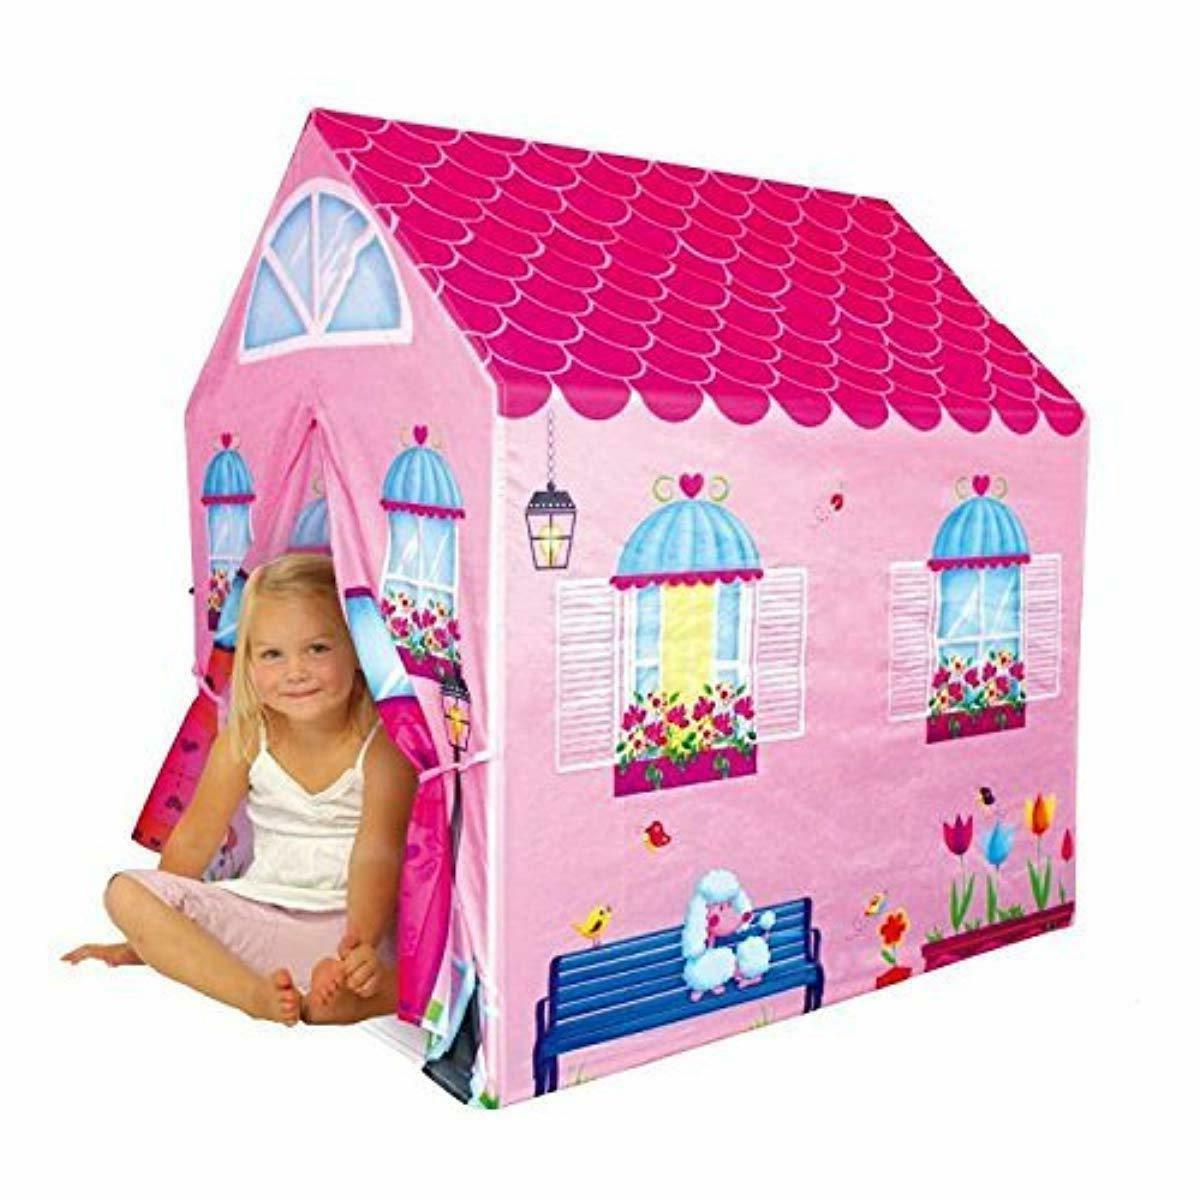 Cottage Playhouse House Kids Secret Pink Play NEW